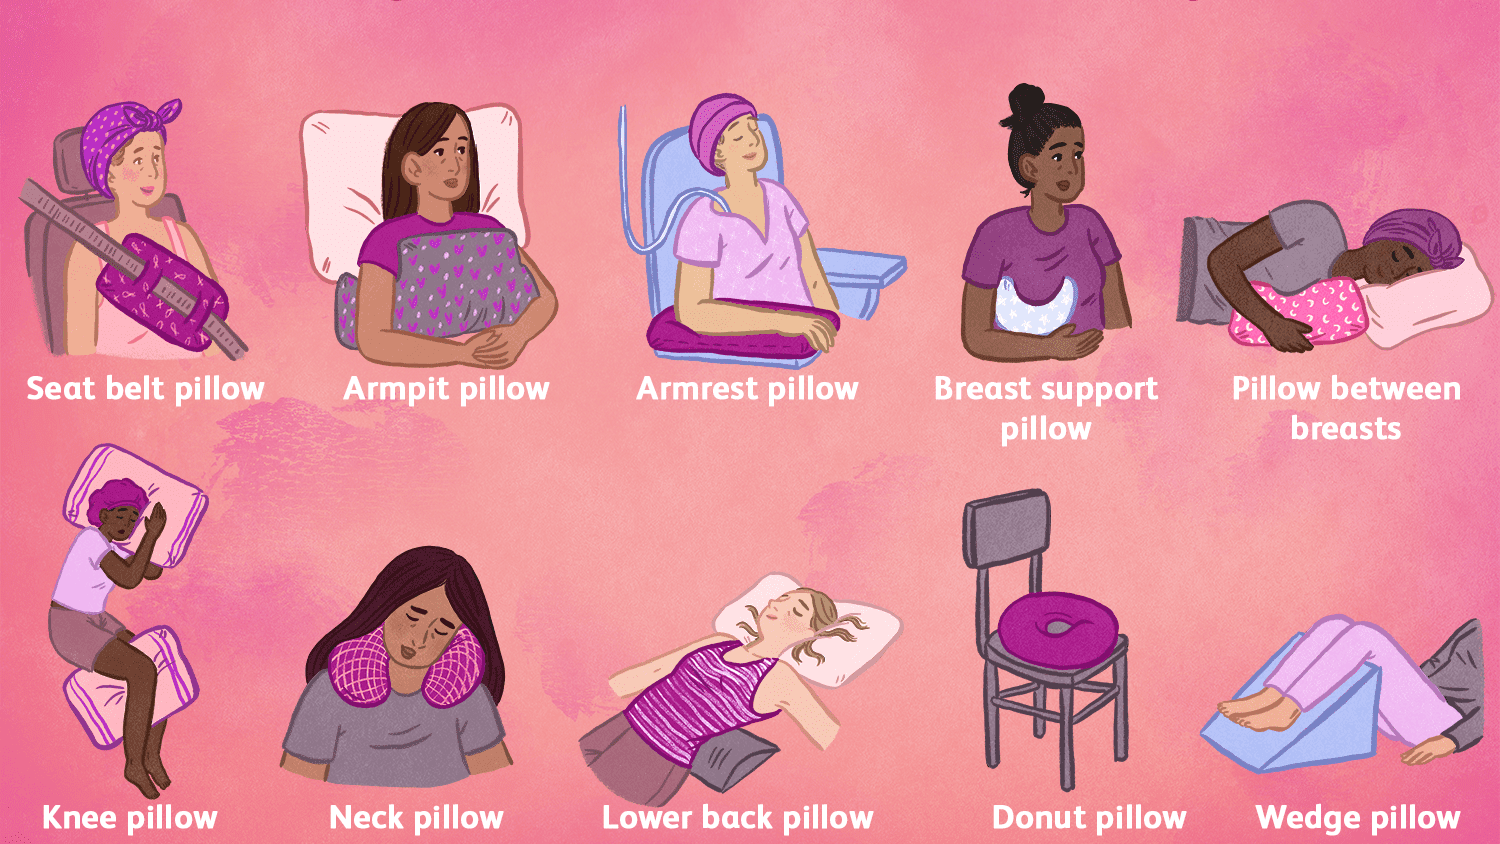 during breast cancer treatment